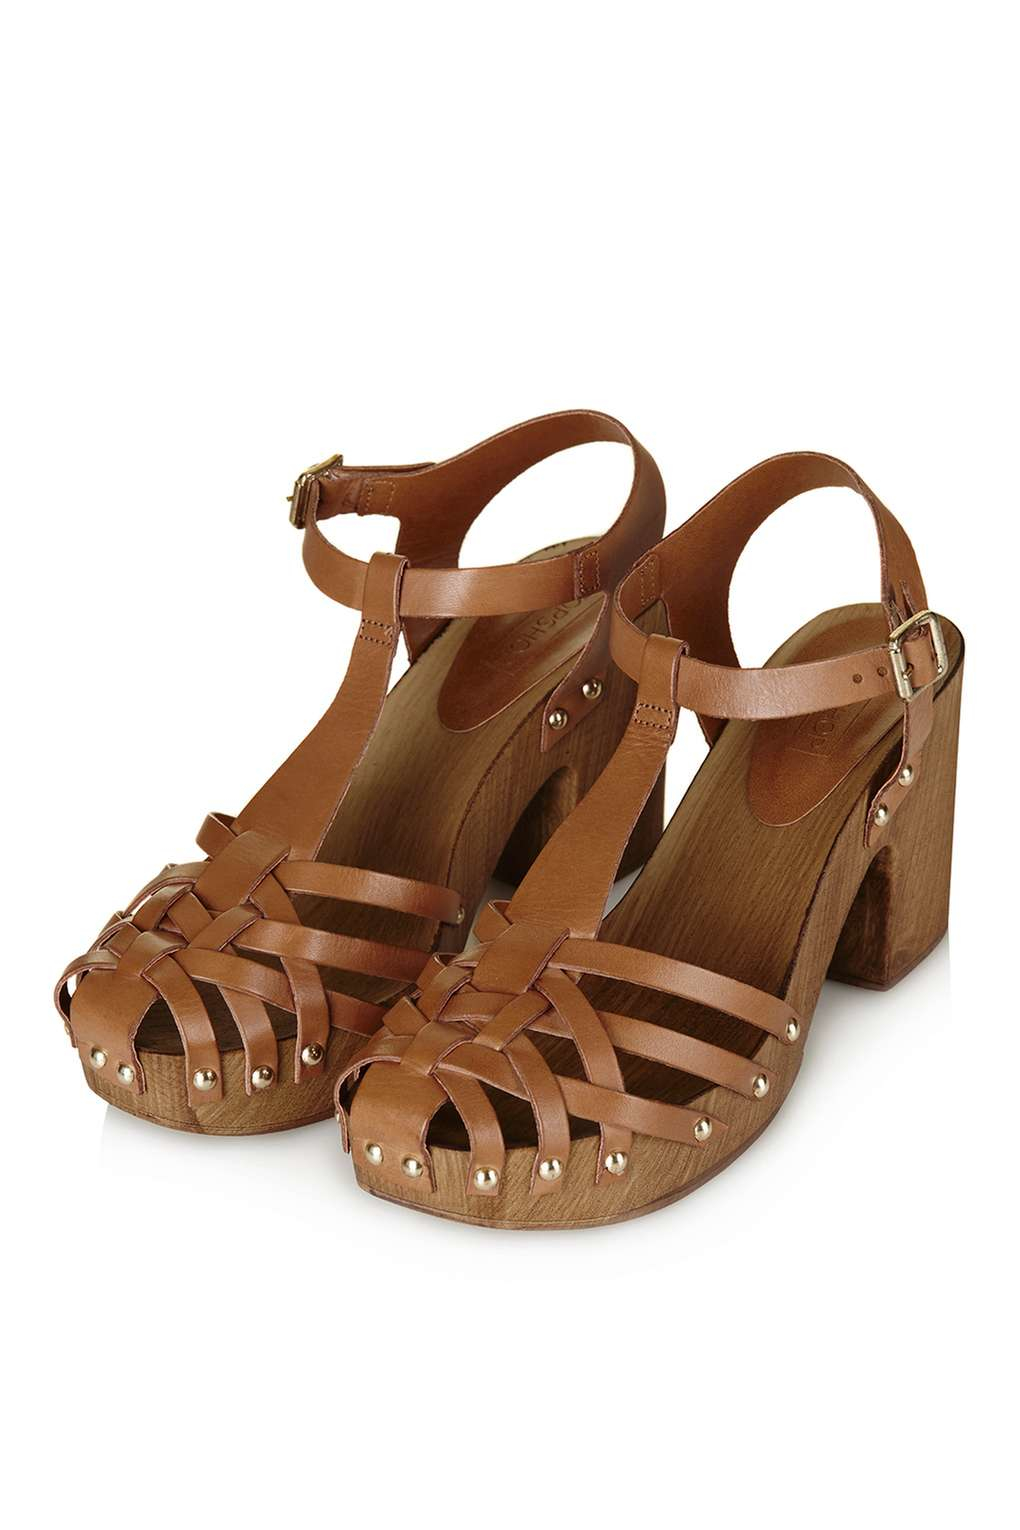 Venice Shoes Leather Brown